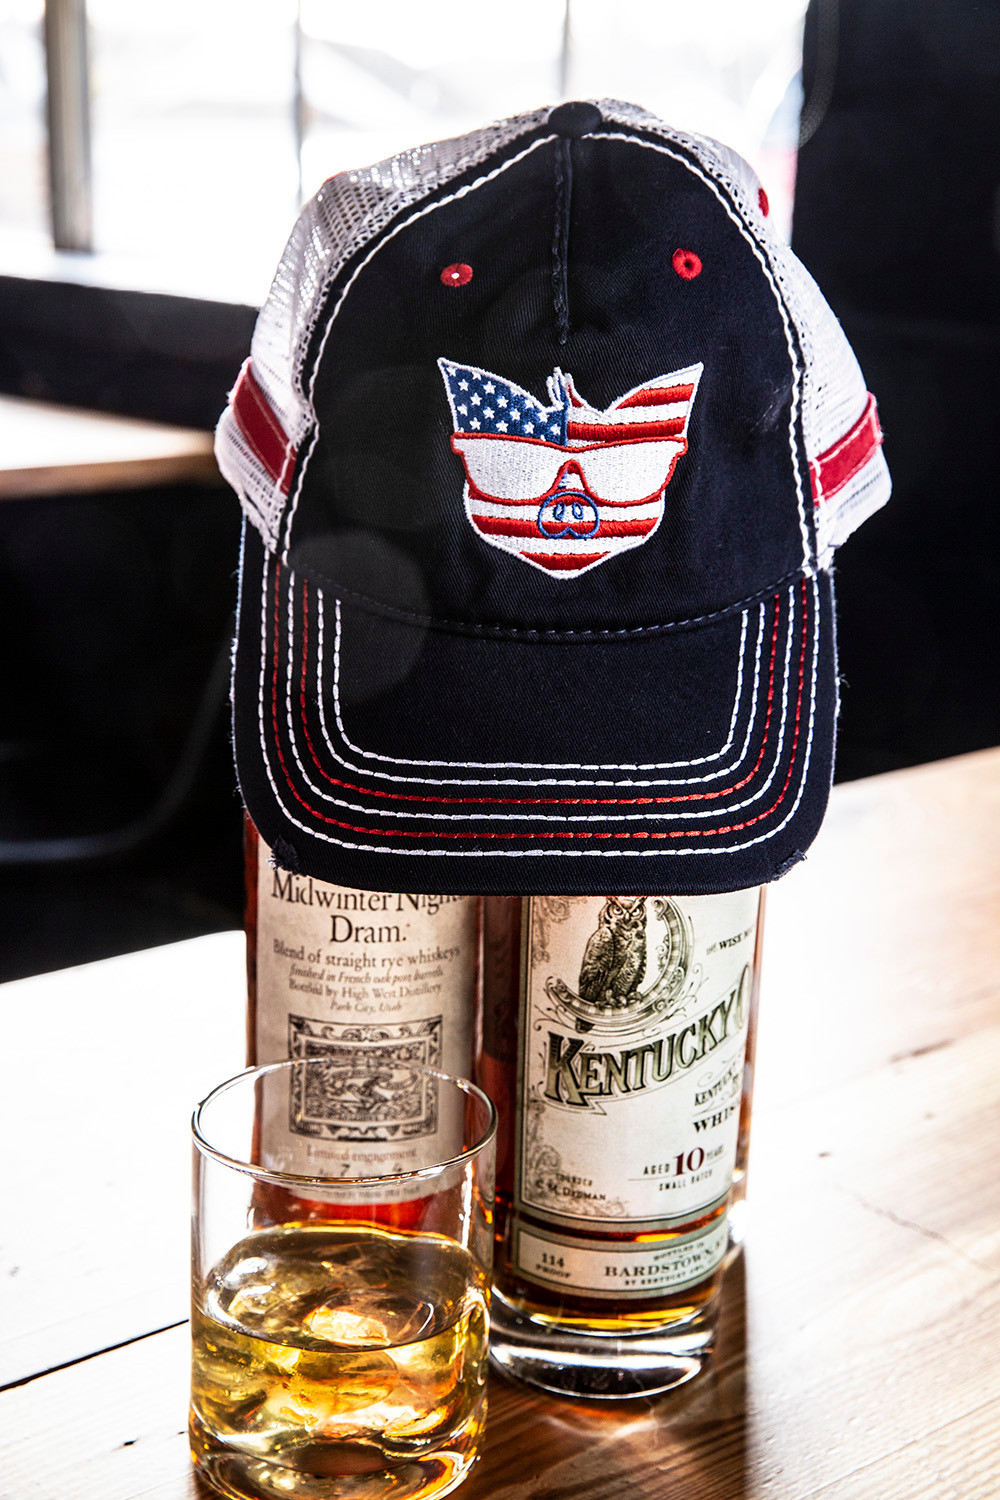 A baseball cap with an American flag colored pig on it sits atop 2 bottles of bourbon behind a glass of bourbon on the rocks